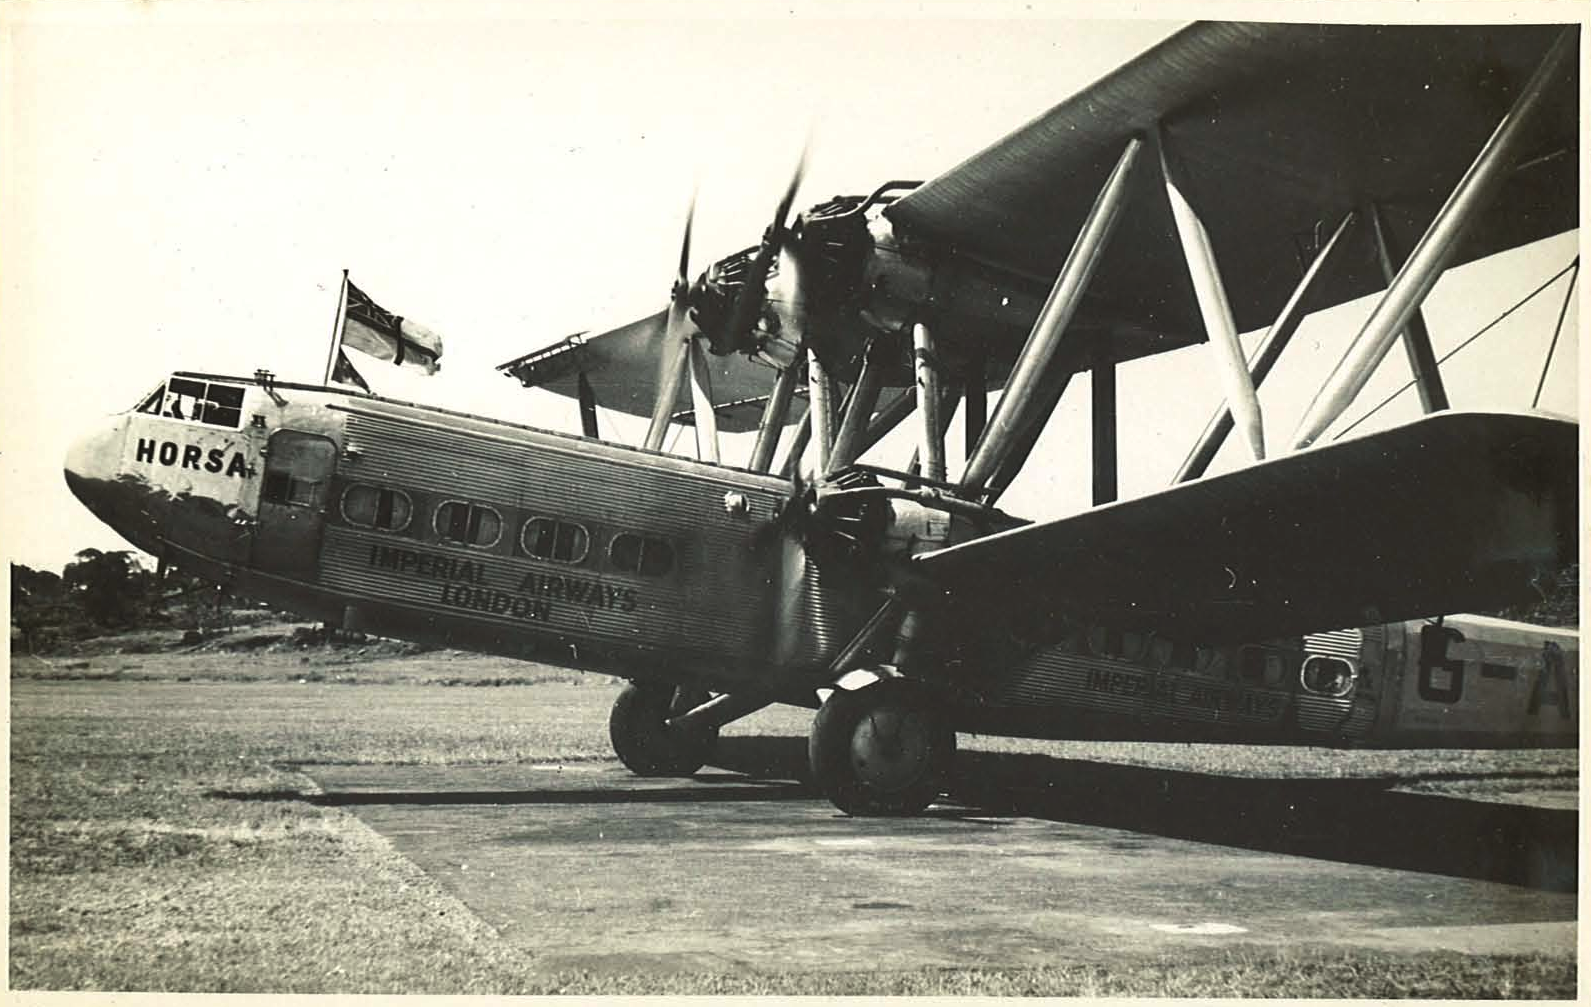 Max flew for Imperial Airways from 1936-38